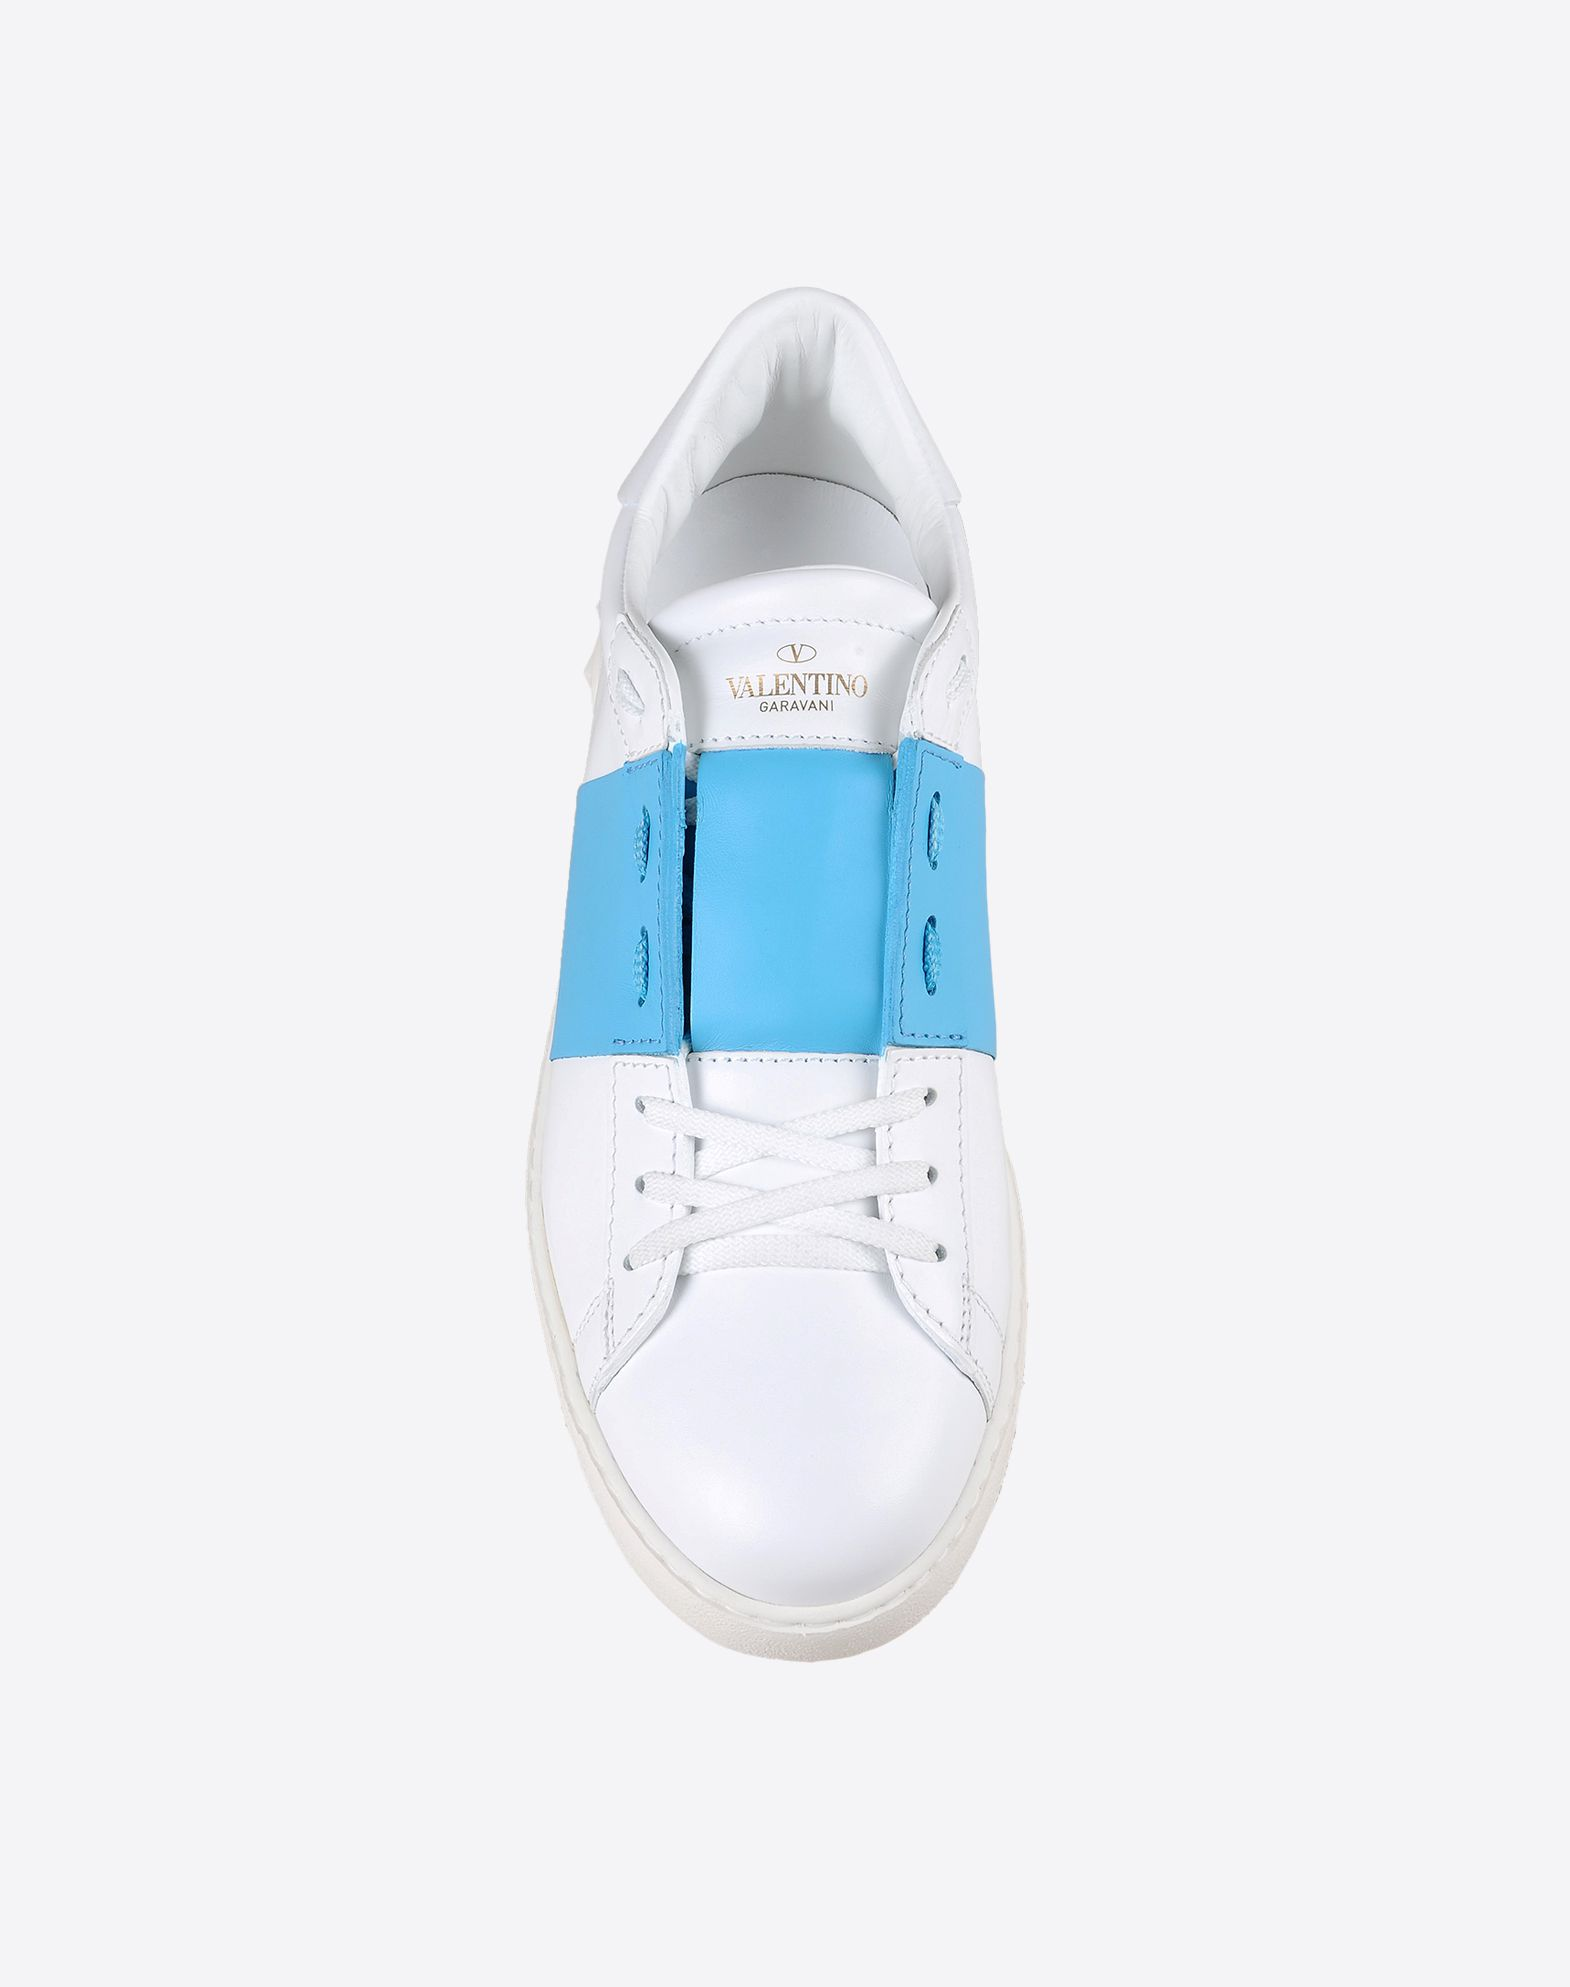 VALENTINO Logo detail Laces Rubber sole Round toeline  44797747ml